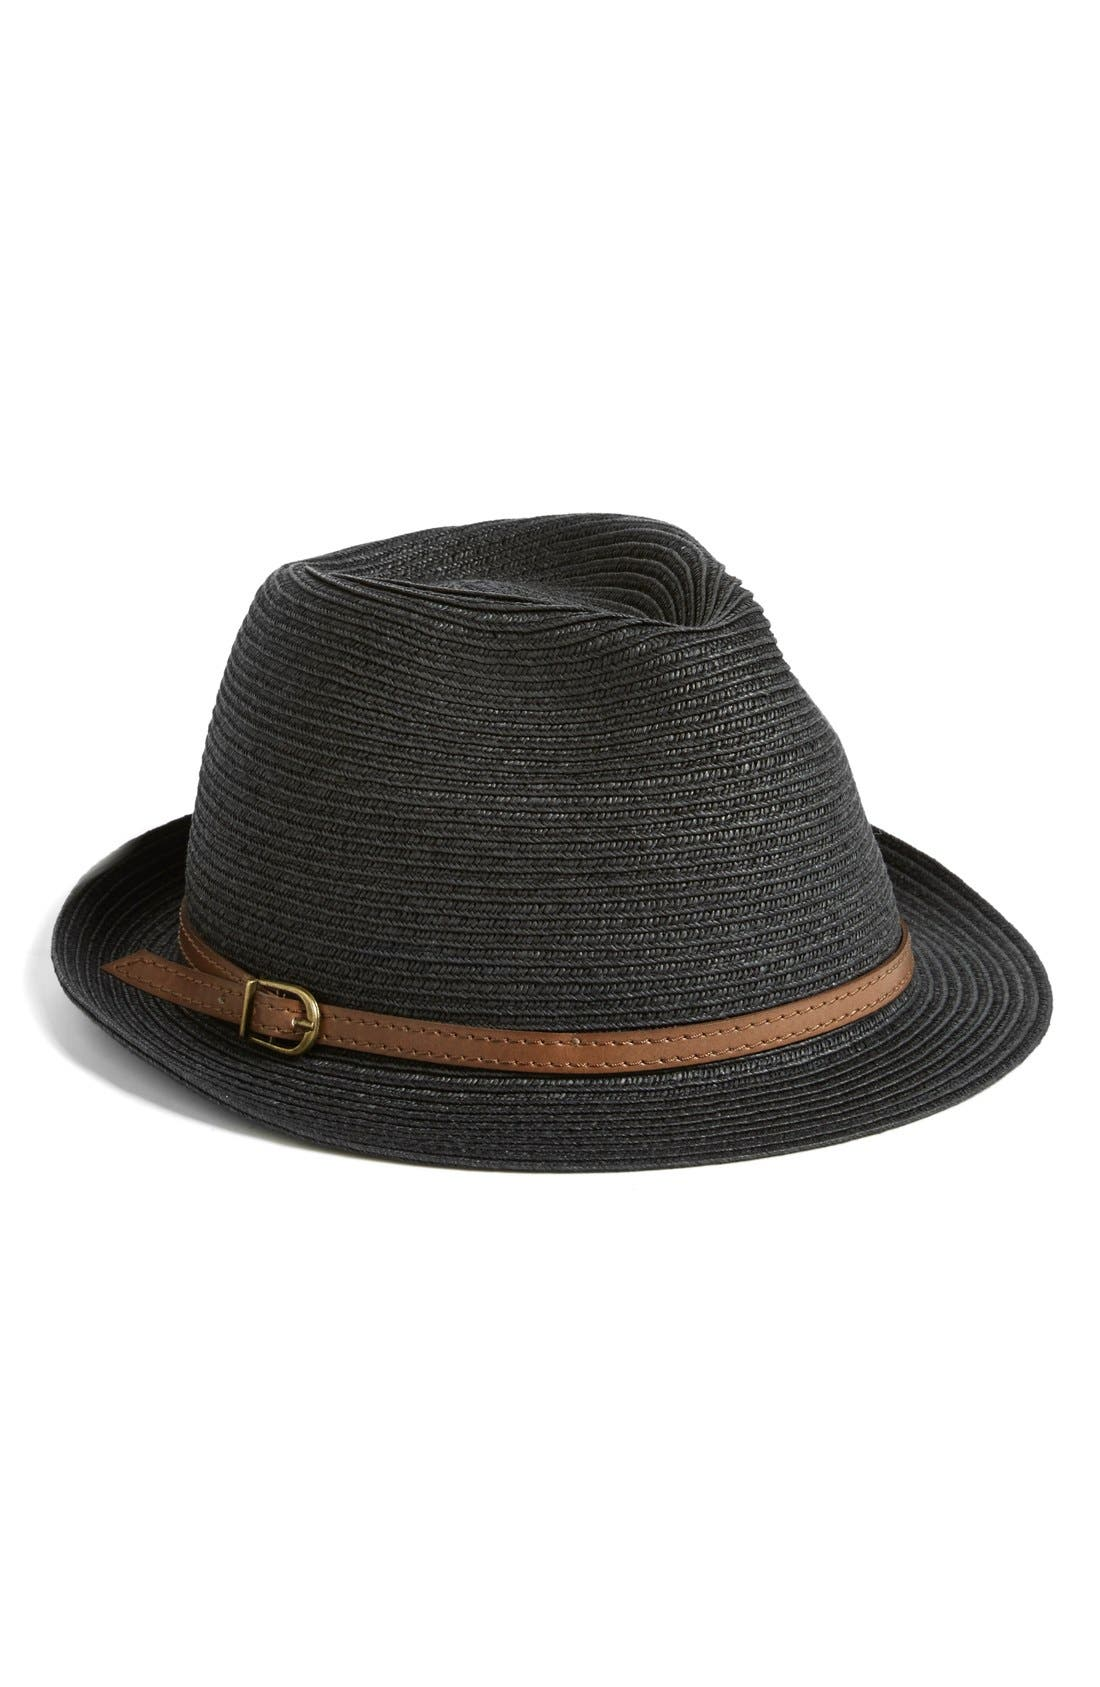 NORDSTROM 'Stone Washed' Fedora, Main, color, 001